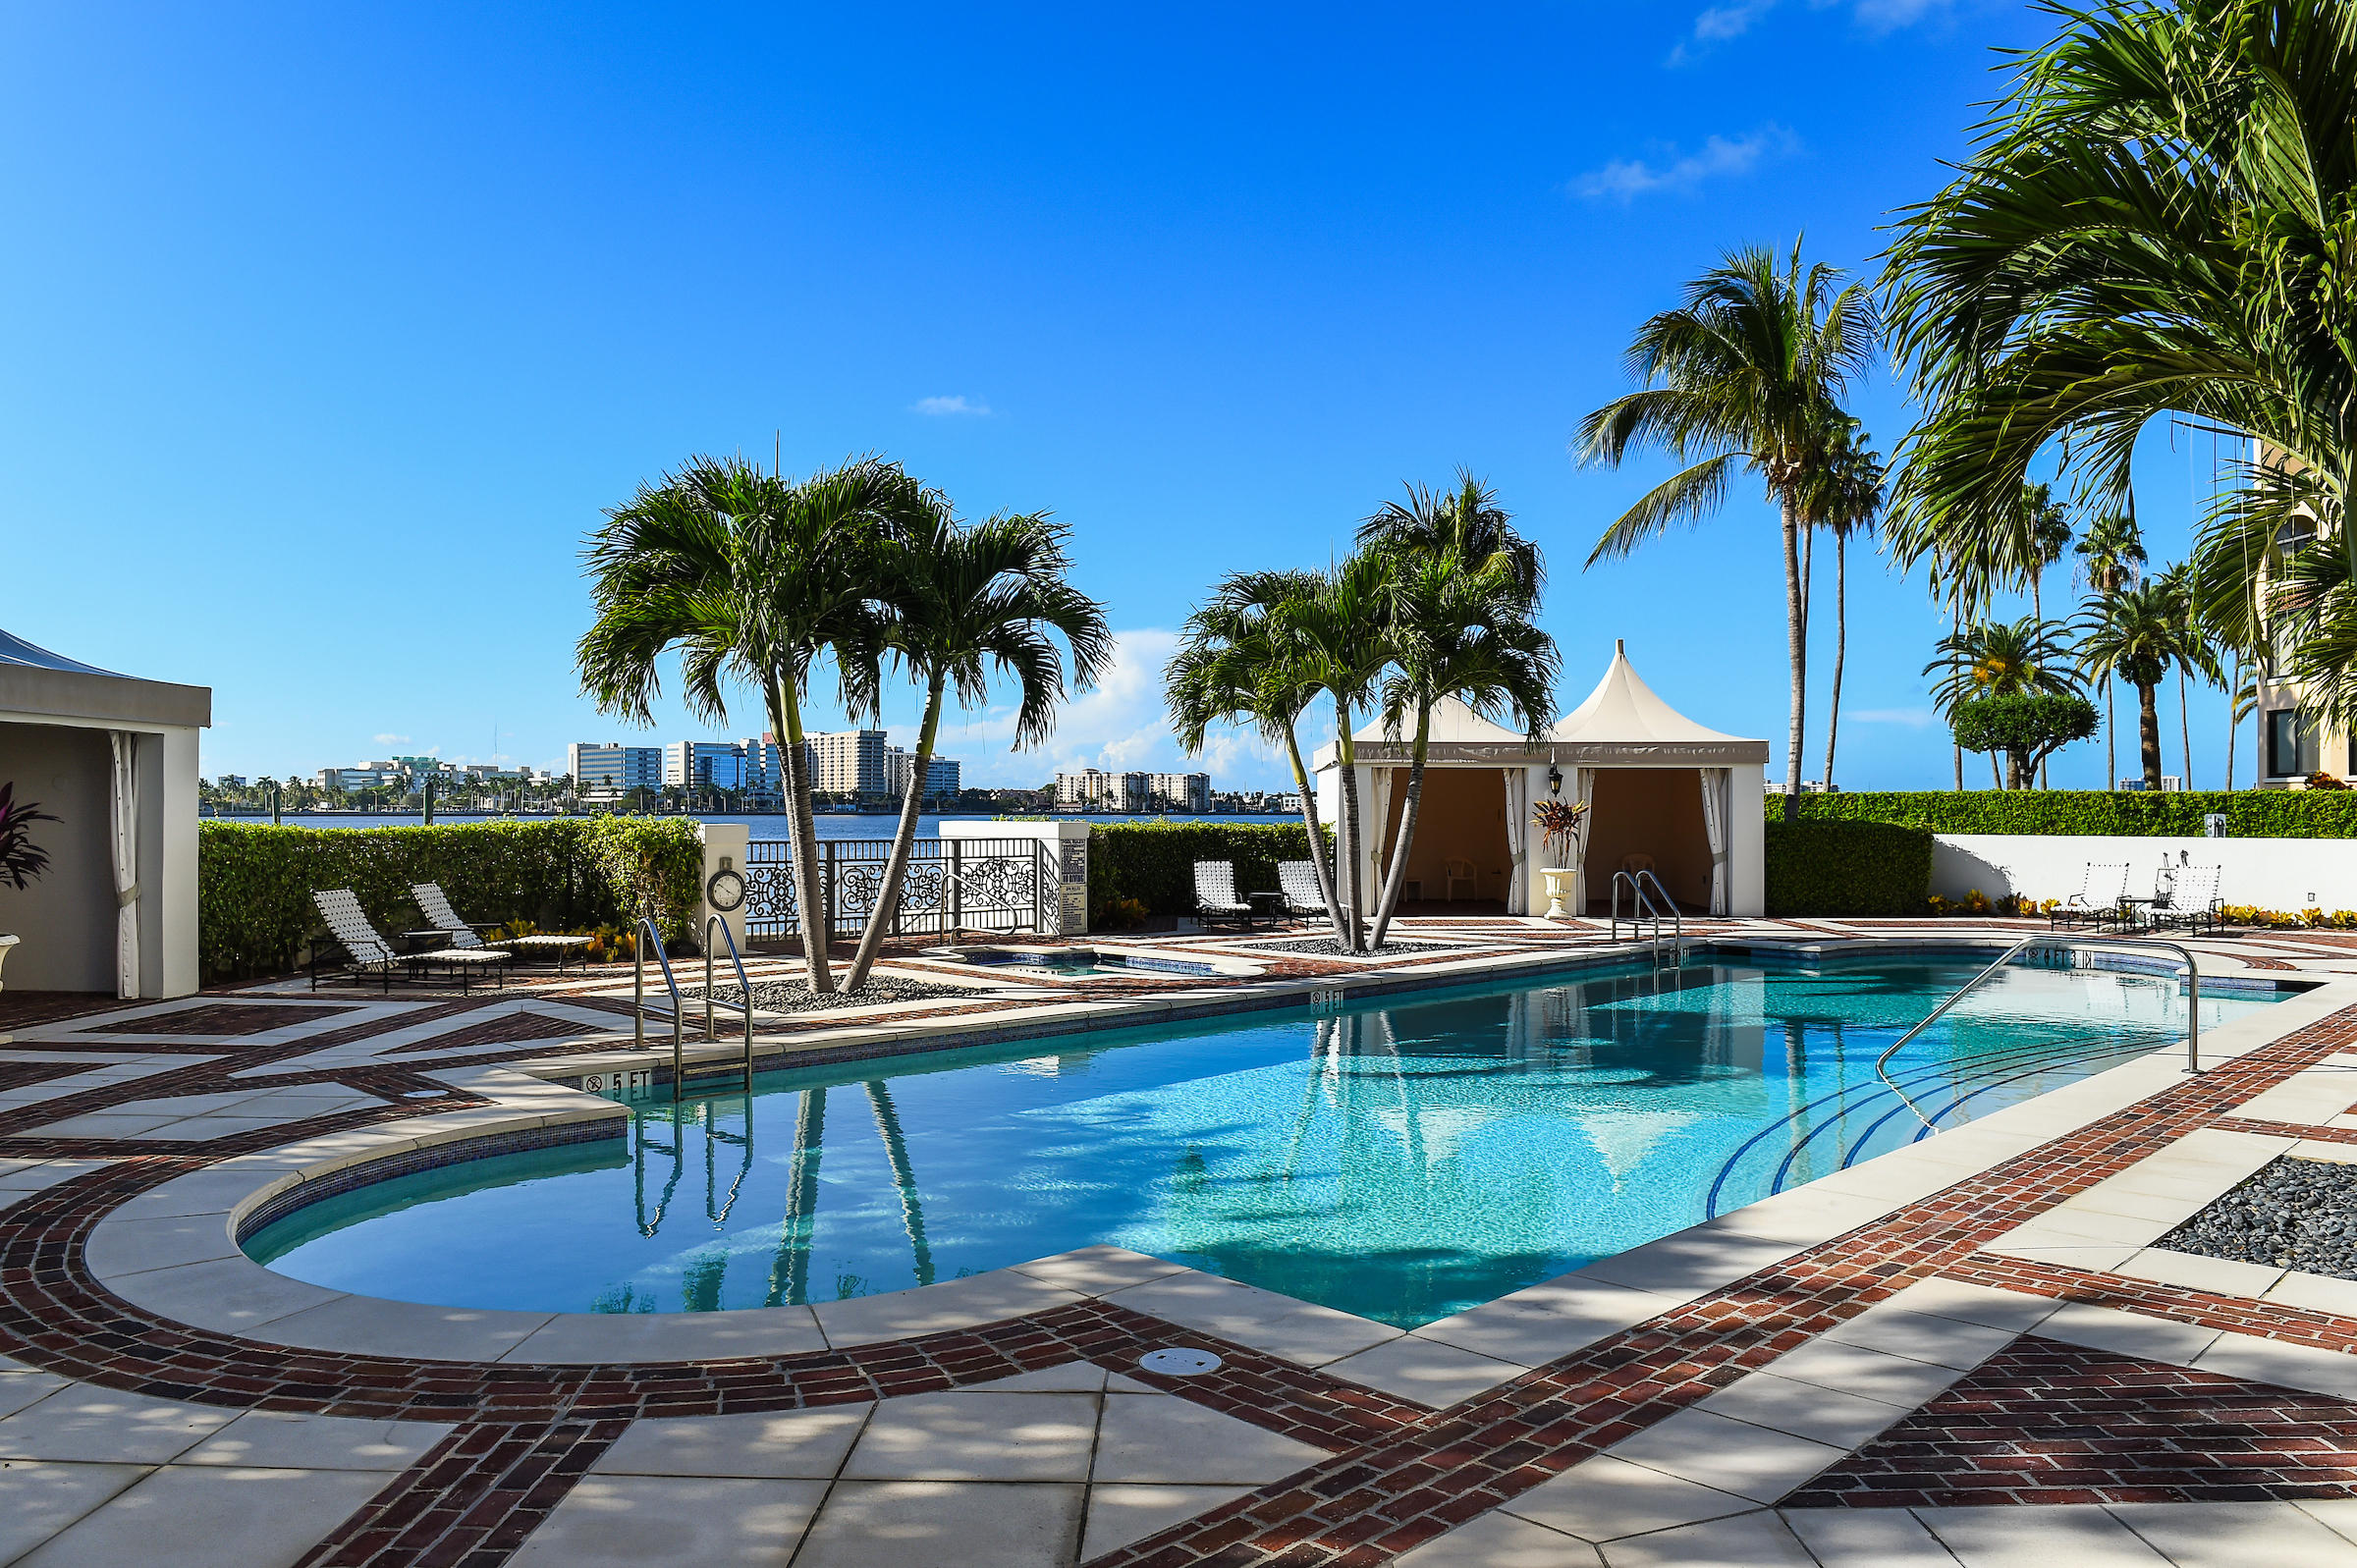 IL LUGANO CONDO PALM BEACH REAL ESTATE